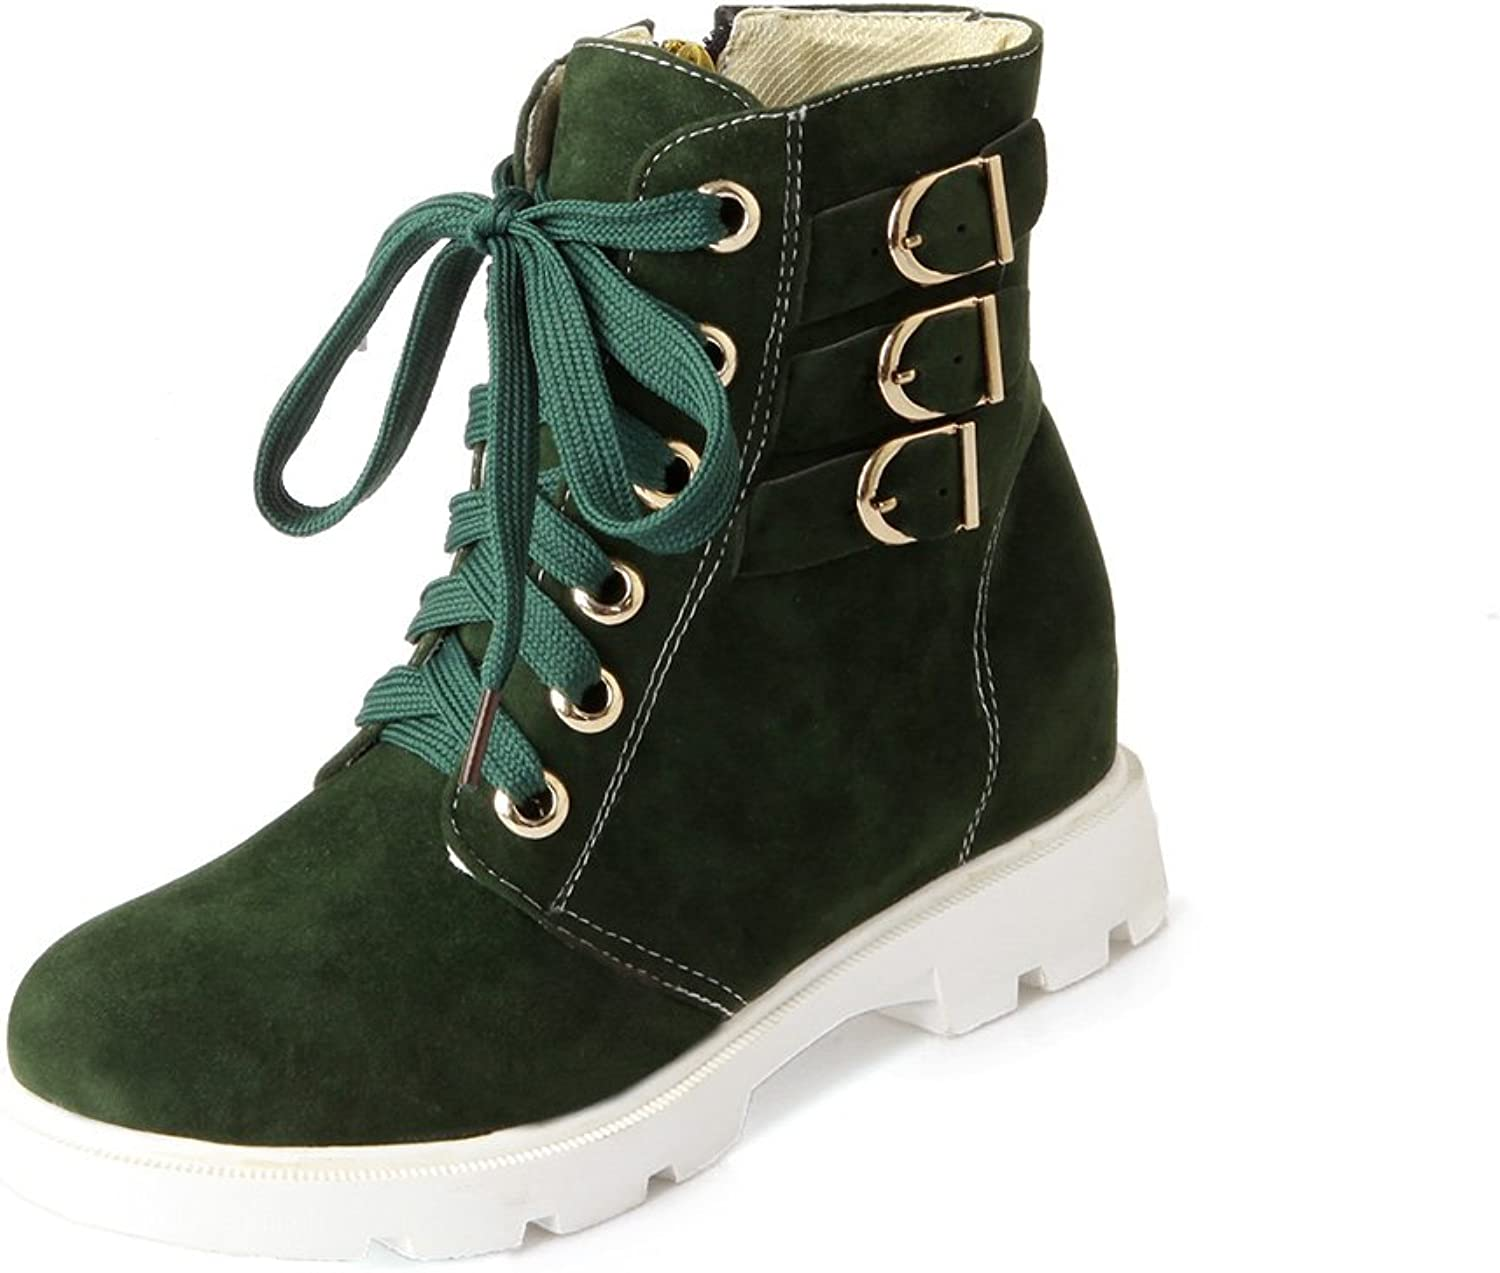 MFairy Woman's Fashion Casual Lace up Ankle Booties Zipper Buckle Boots